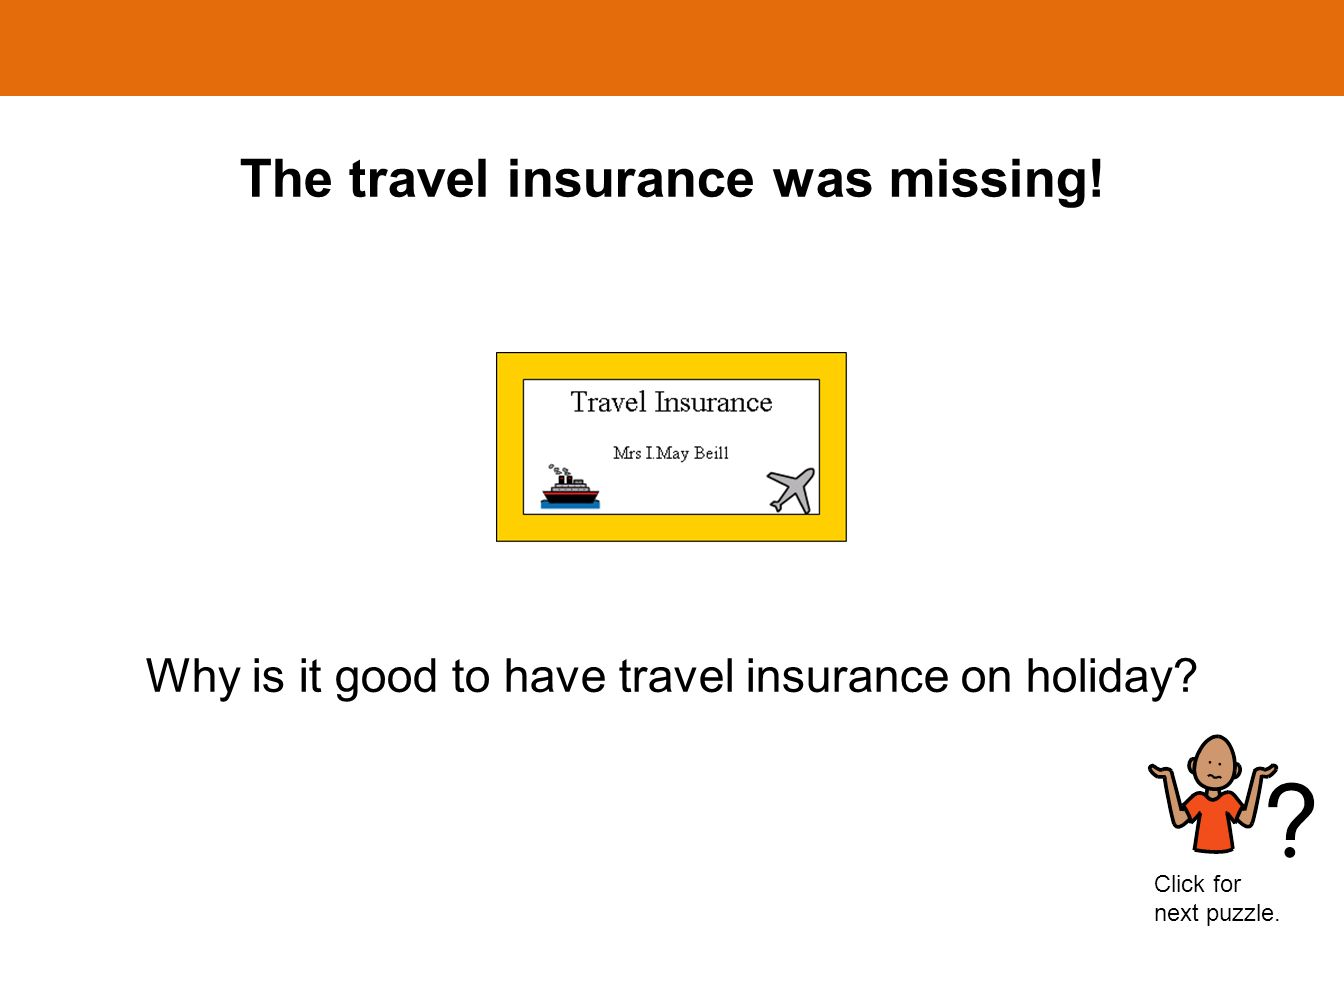 The travel insurance was missing! Why is it good to have travel insurance on holiday? Click for next puzzle.